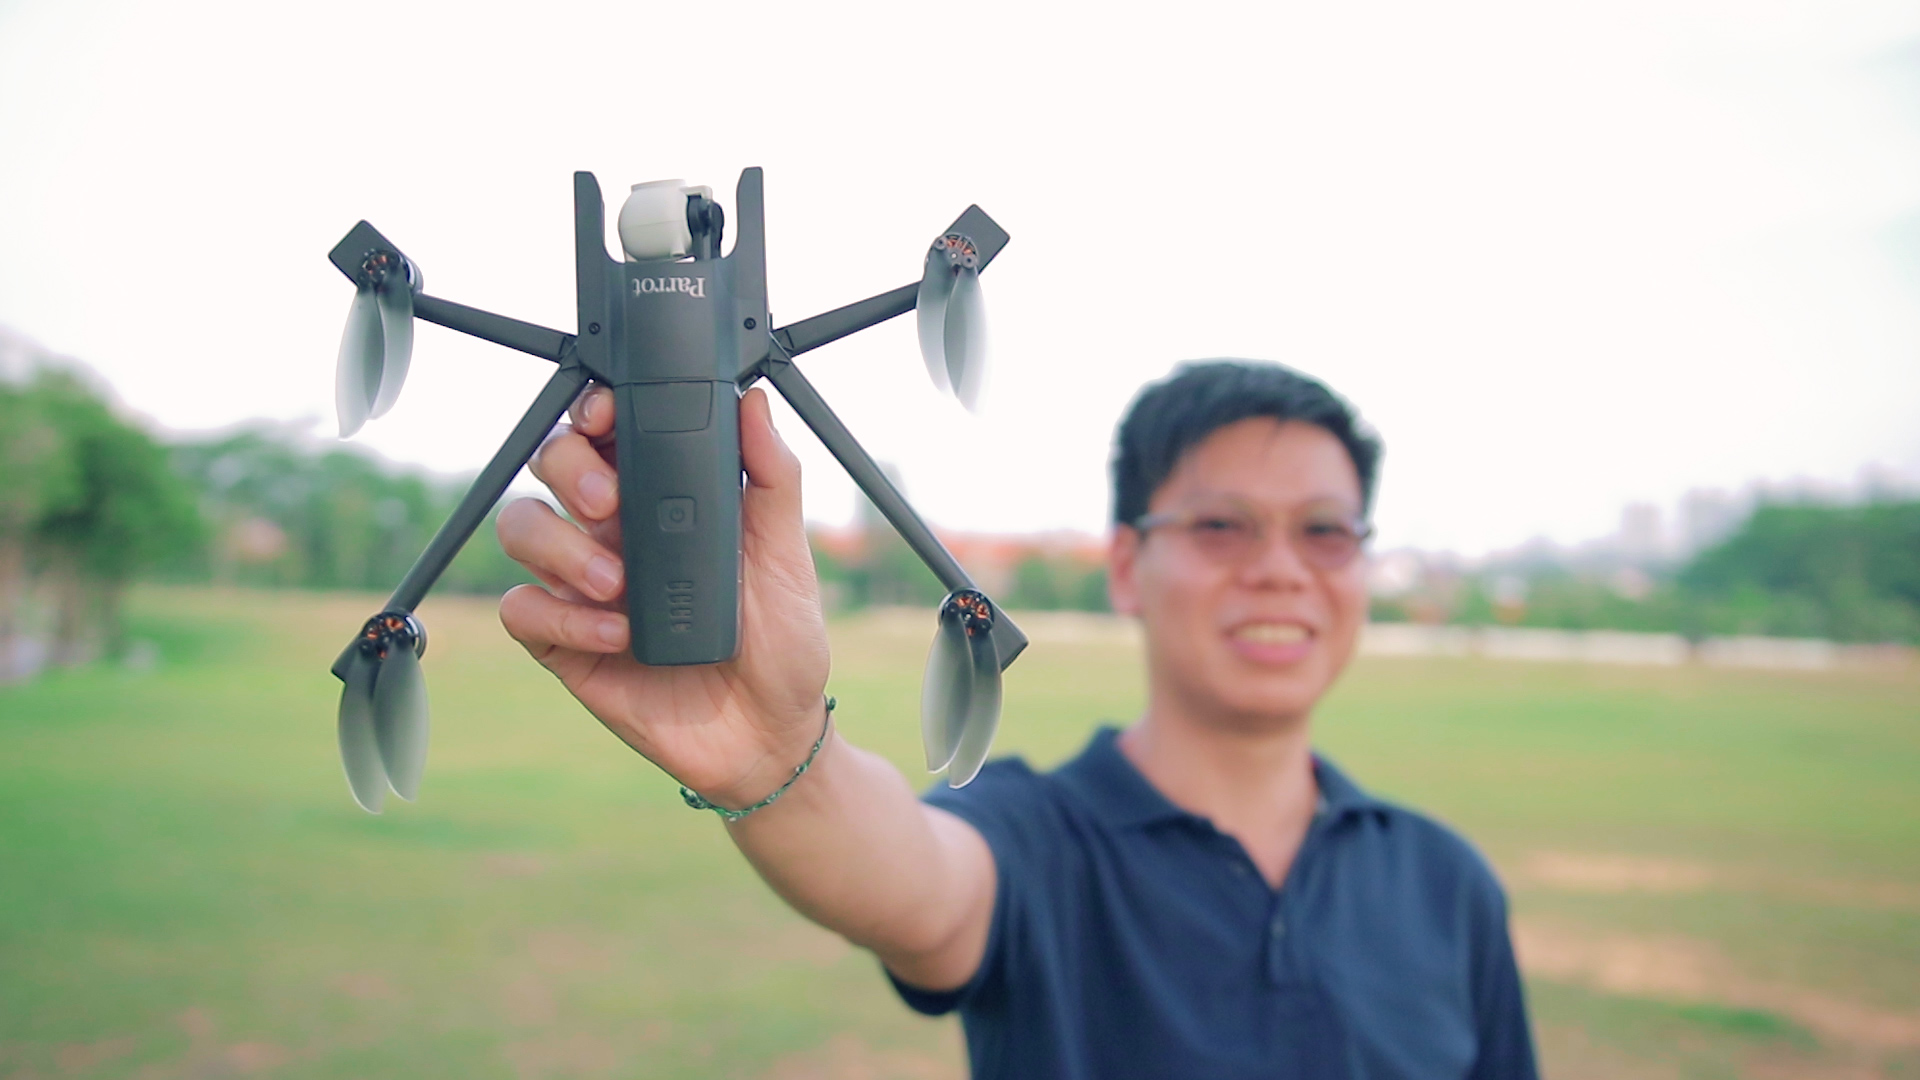 Quick take: The high performance Parrot Anafi drone